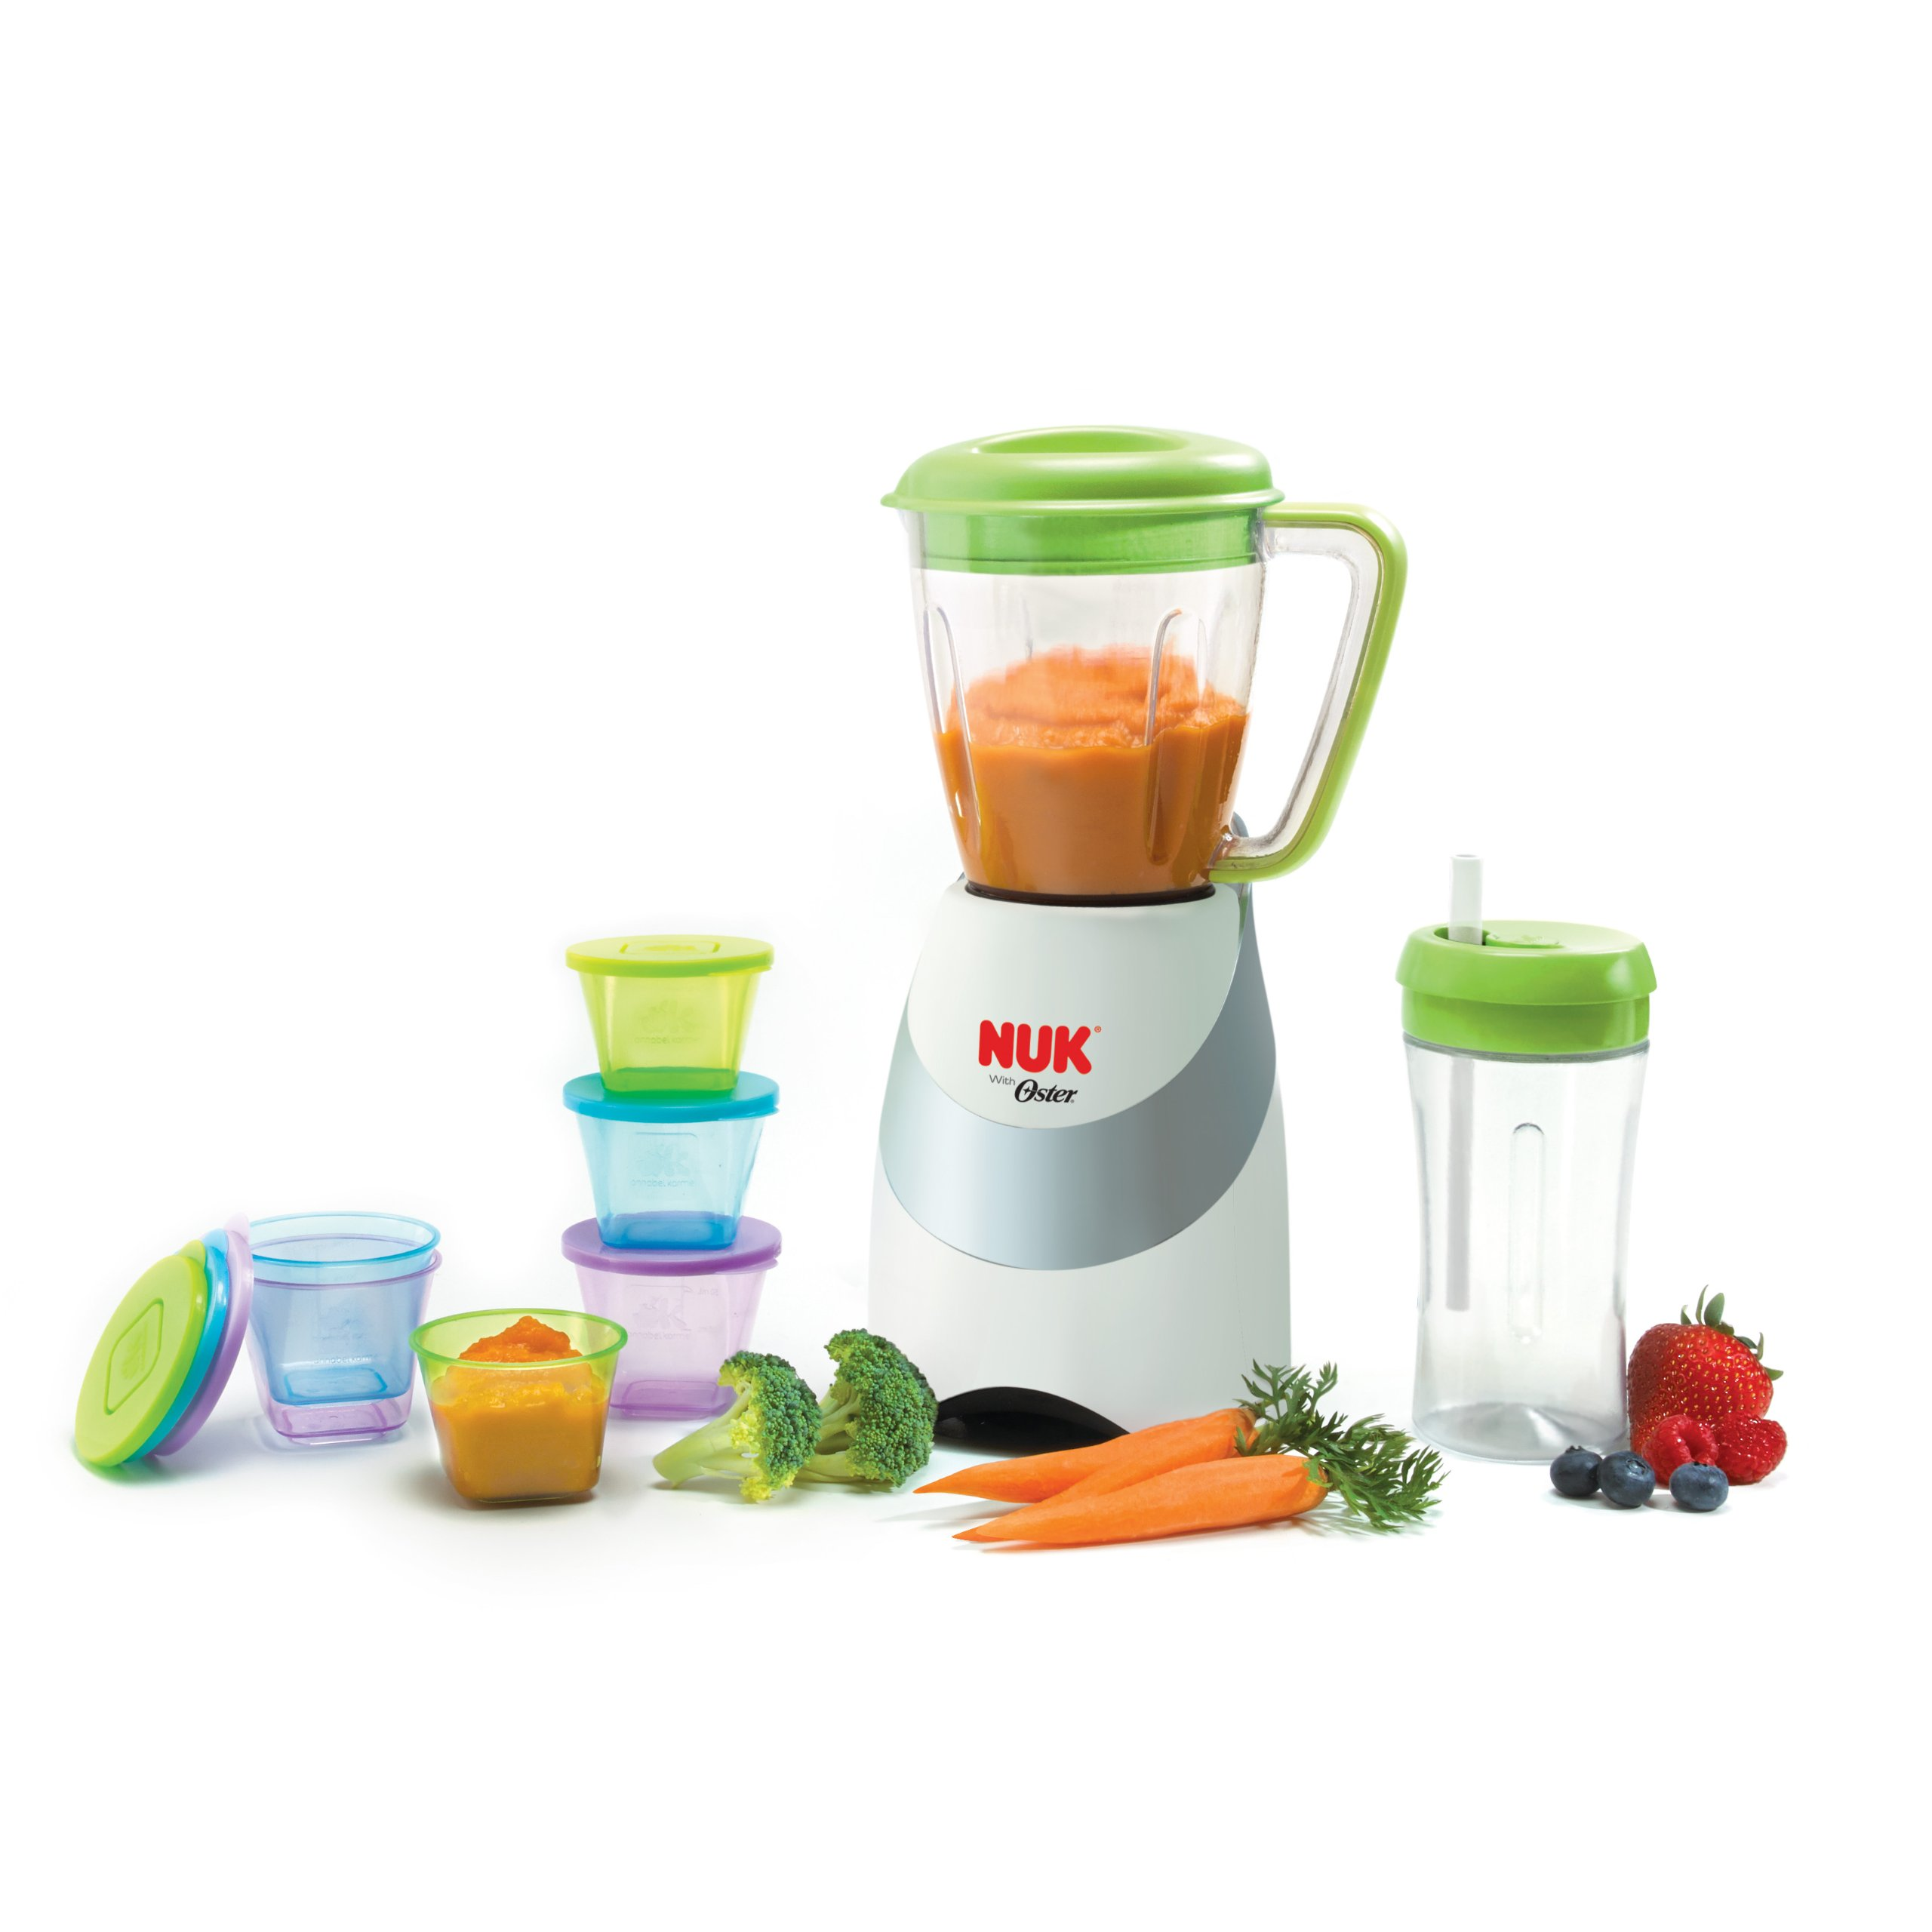 NUK Smoothie and Baby Food Maker by NUK